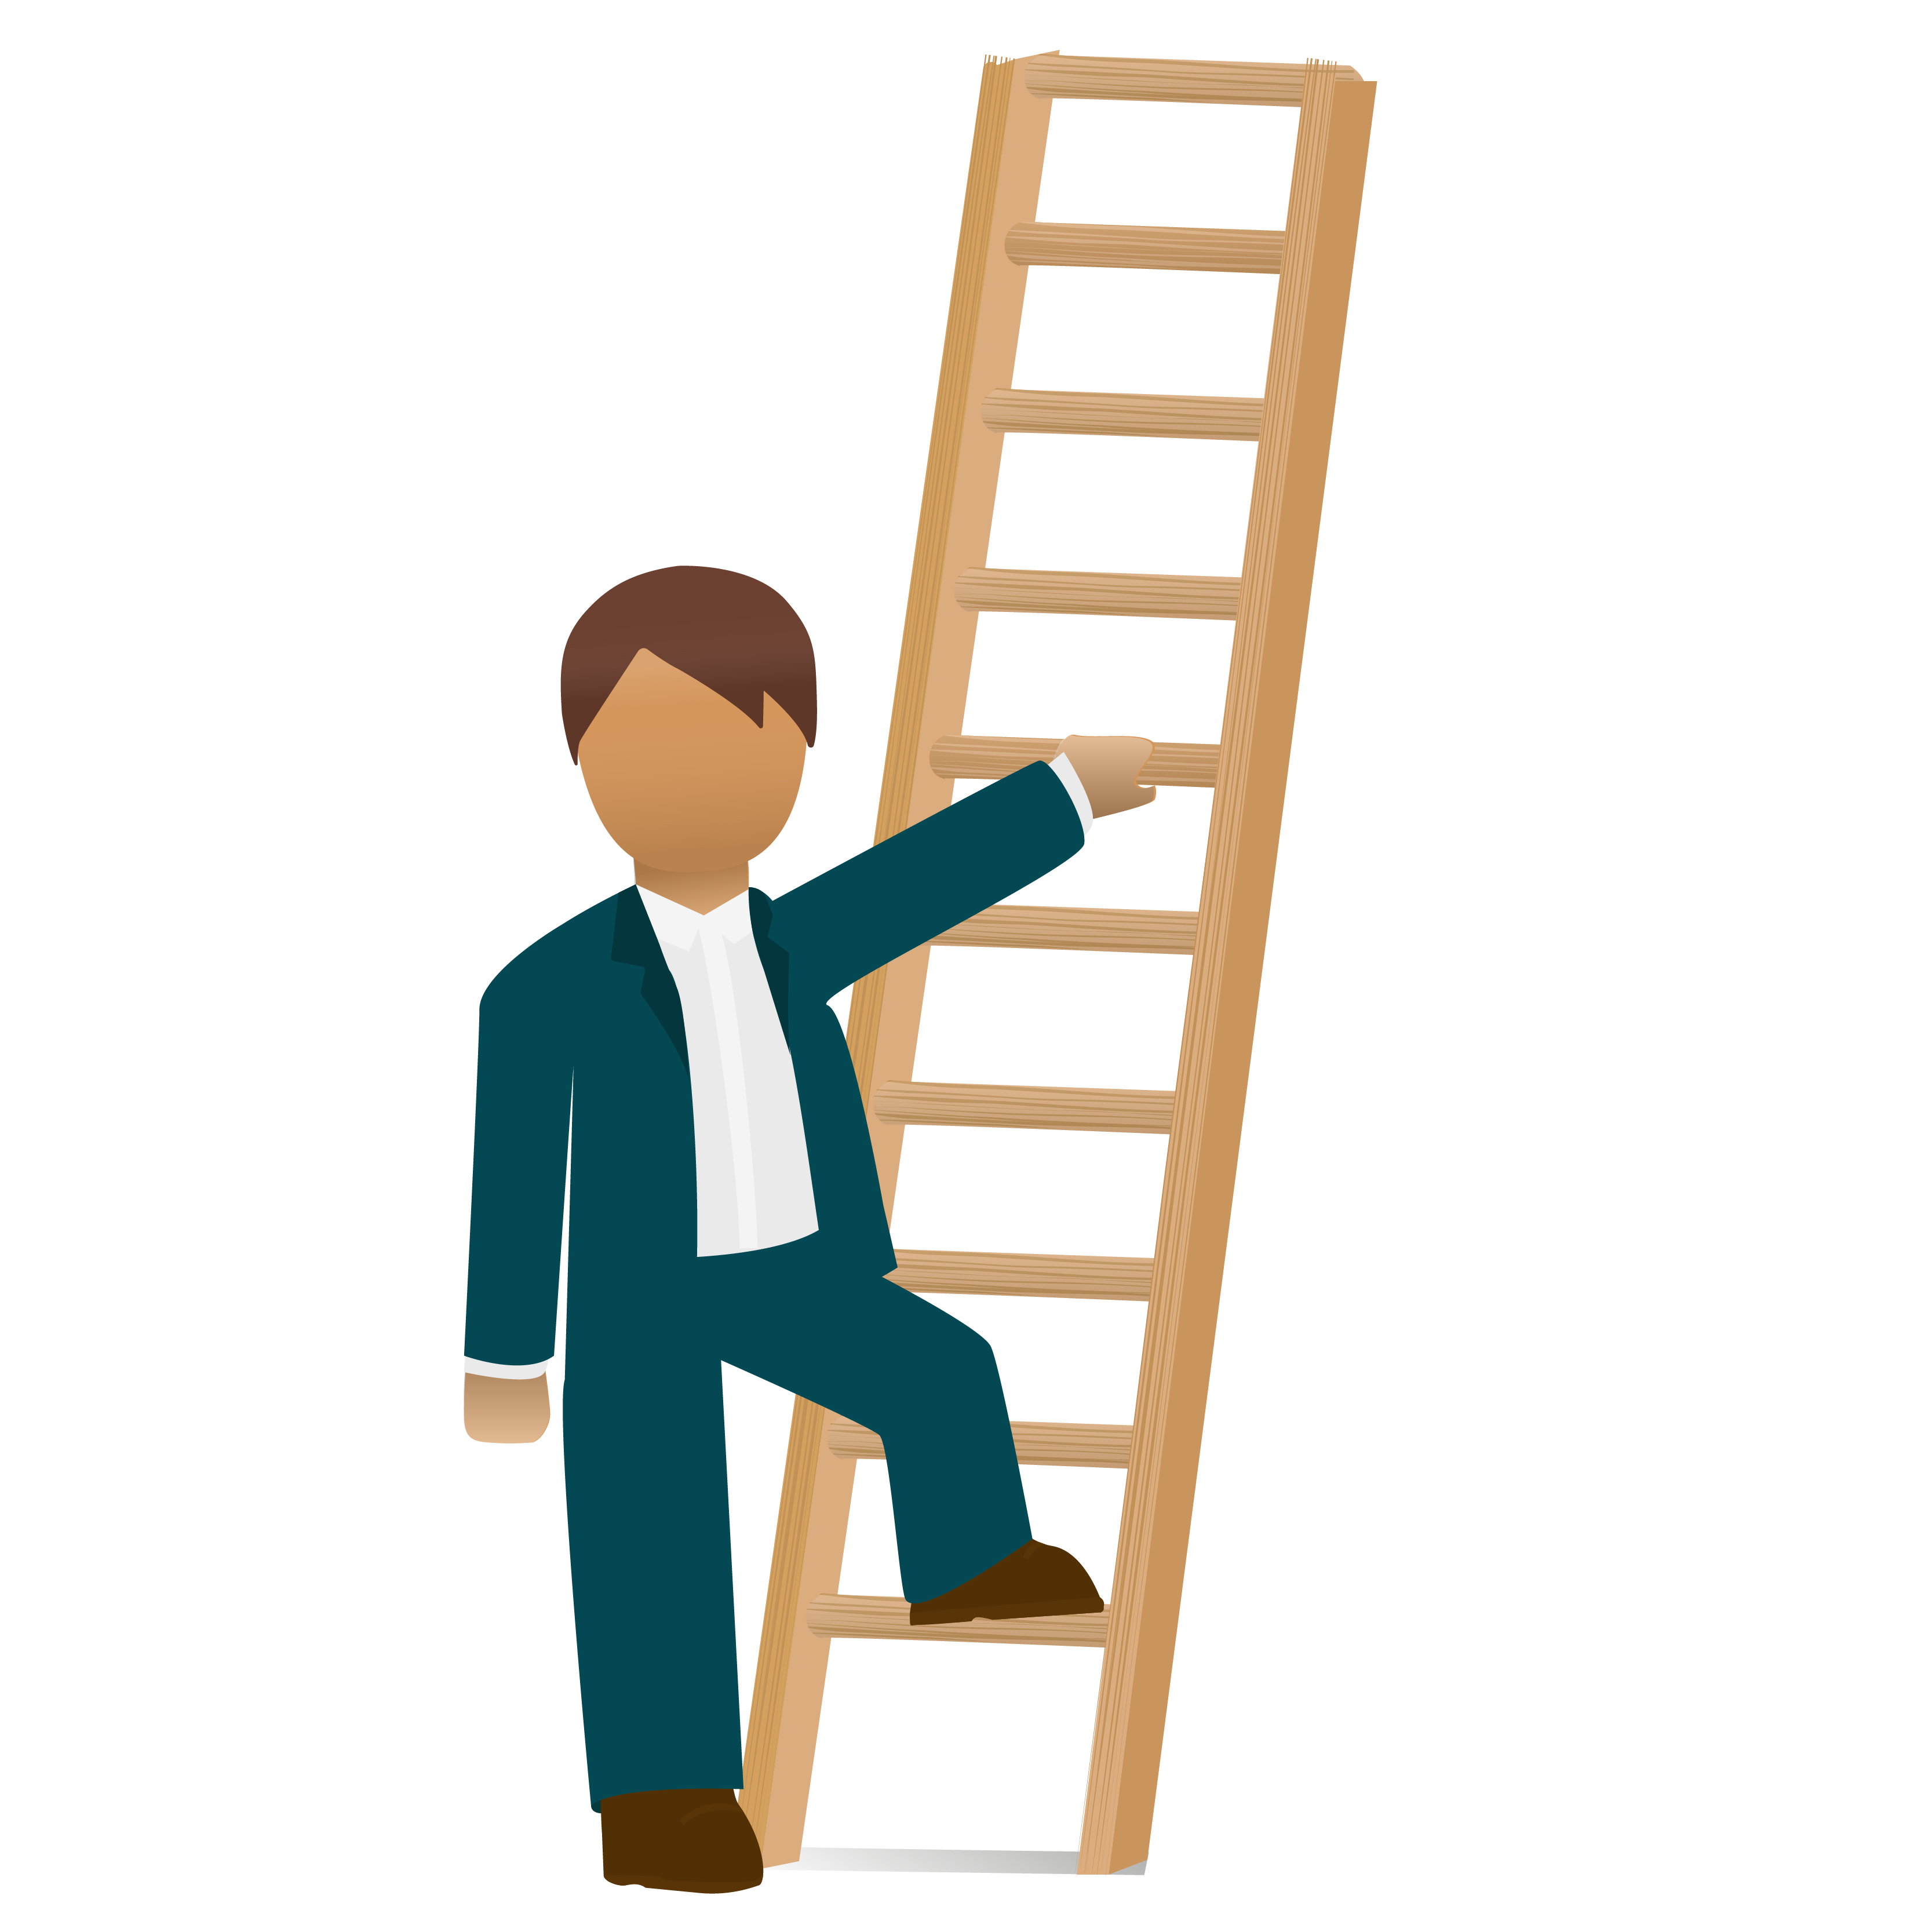 graphic_man_ladder